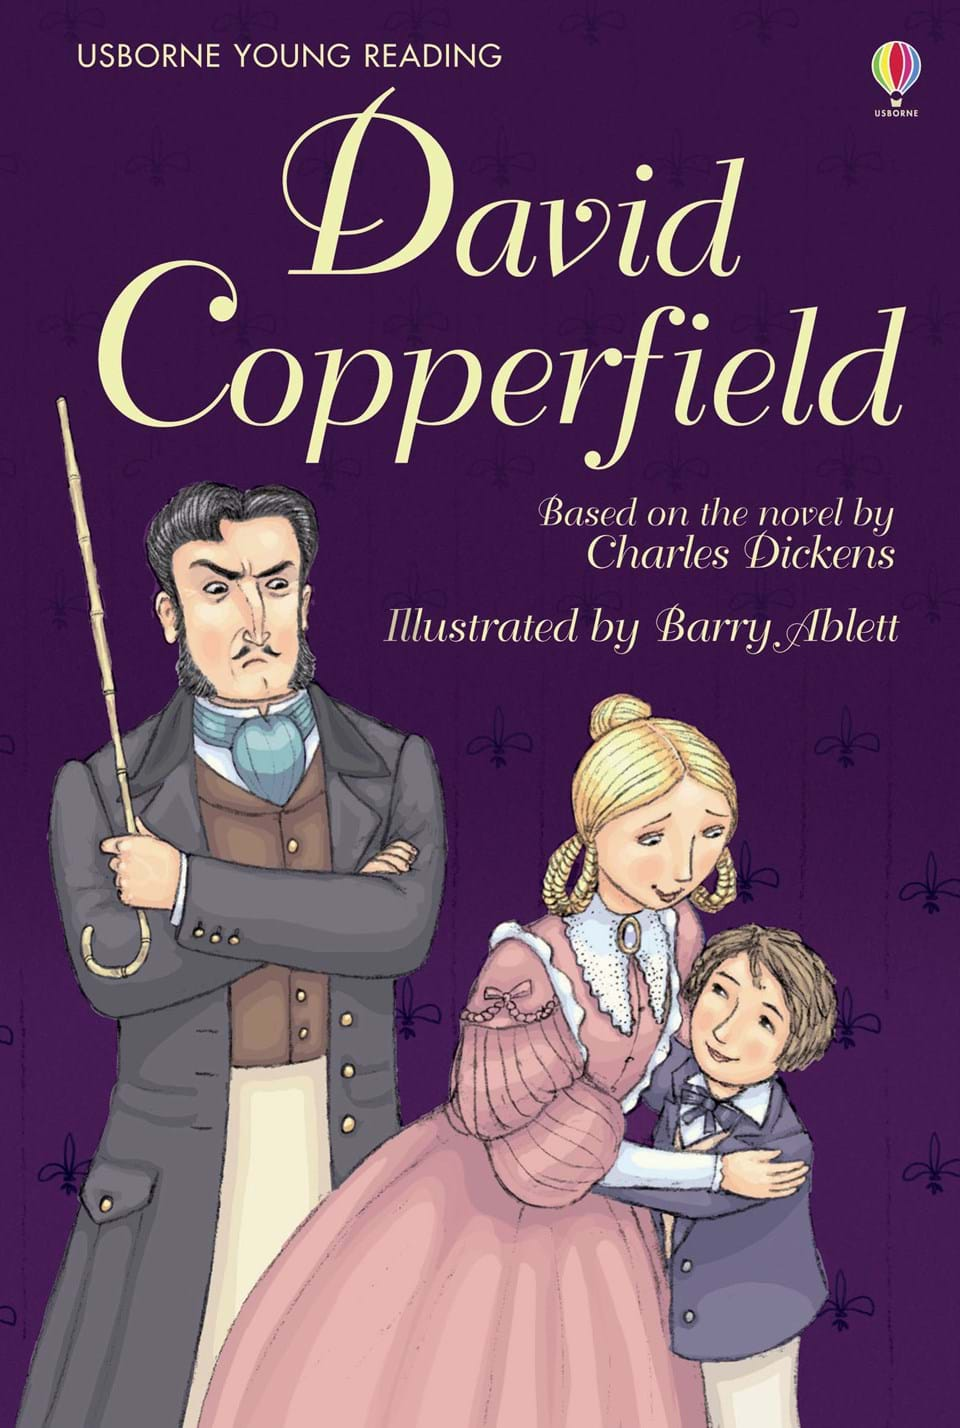 david copperfield at usborne children s books david copperfield